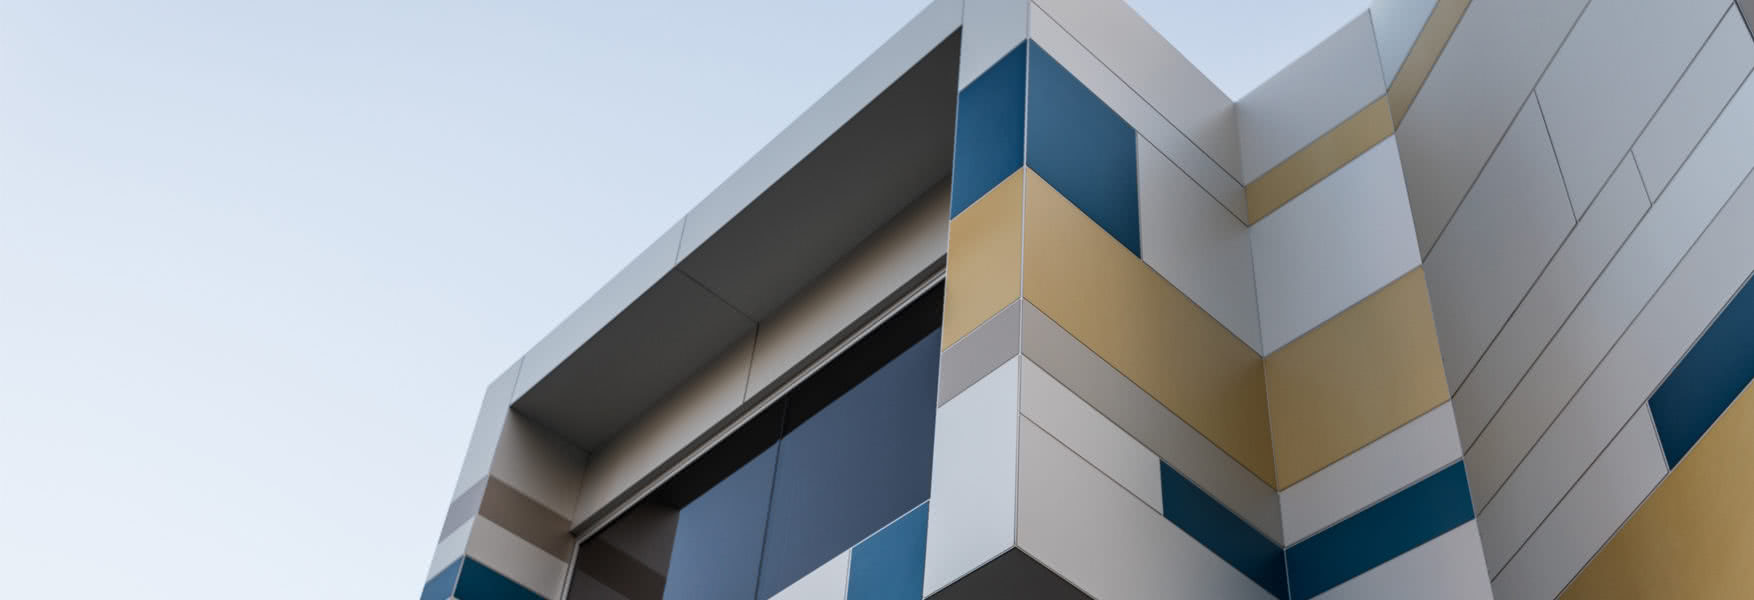 external cladding work completed by denmac